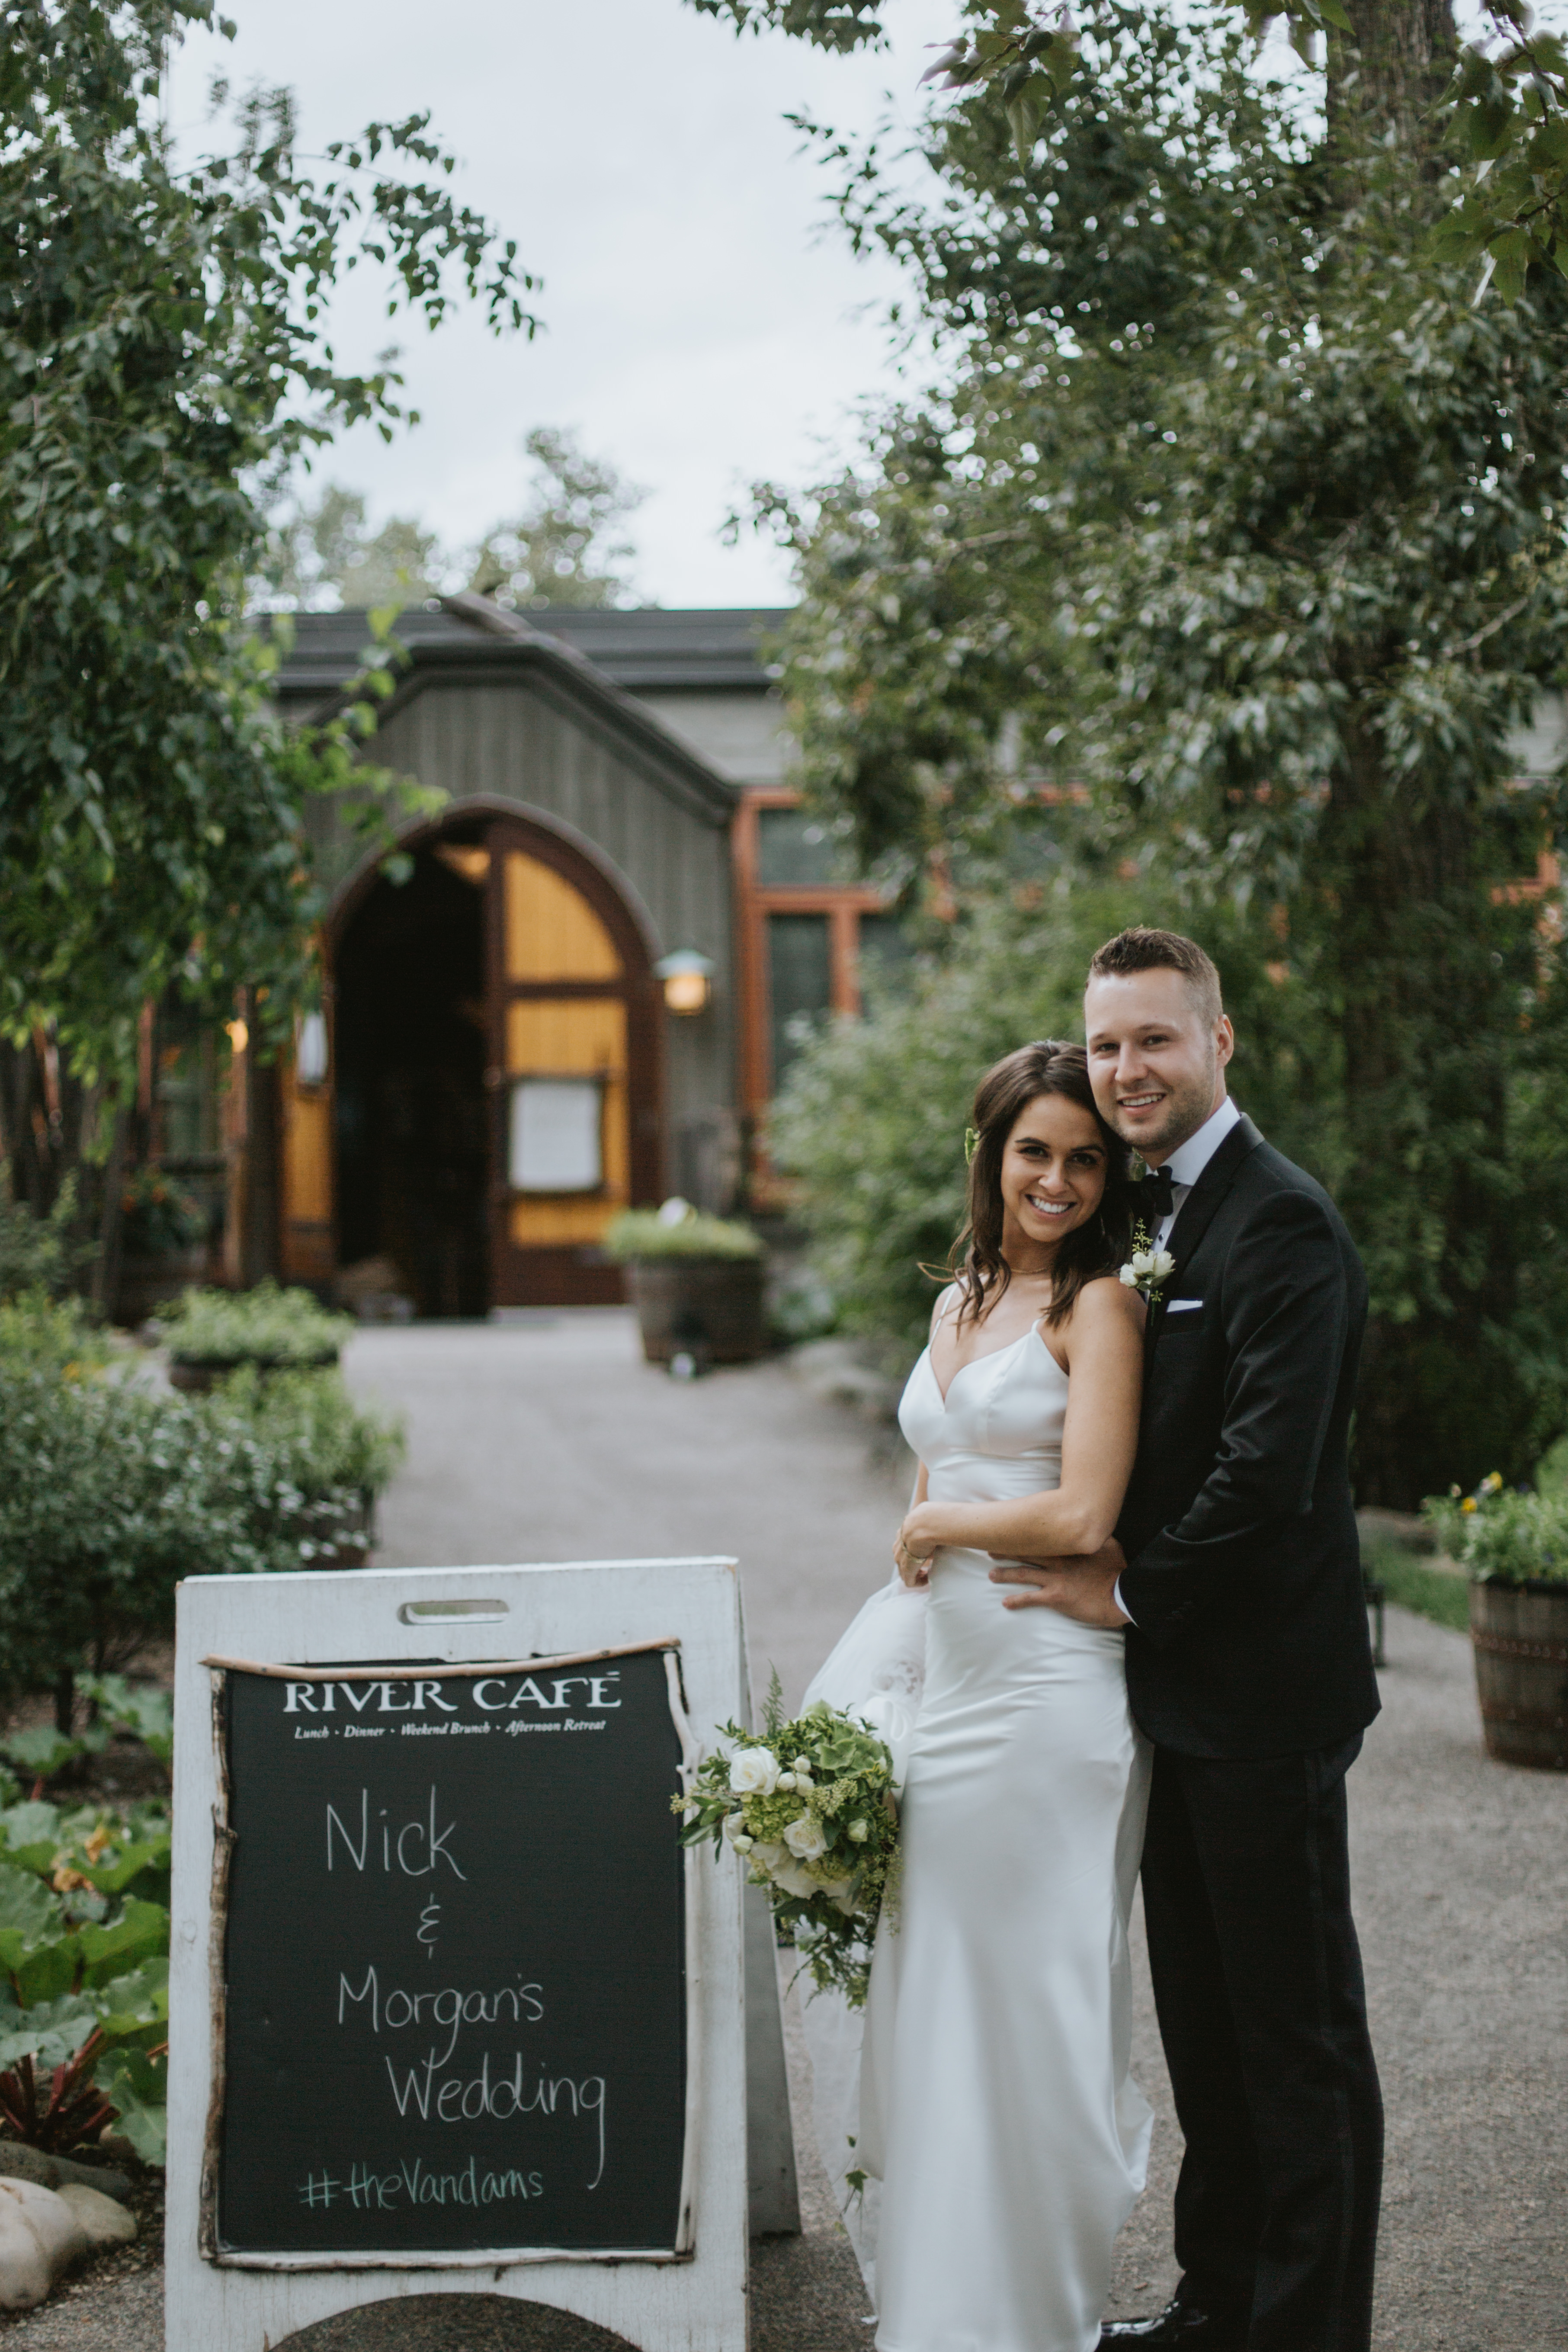 the bride and groom stand in front of the river cafe restaurant